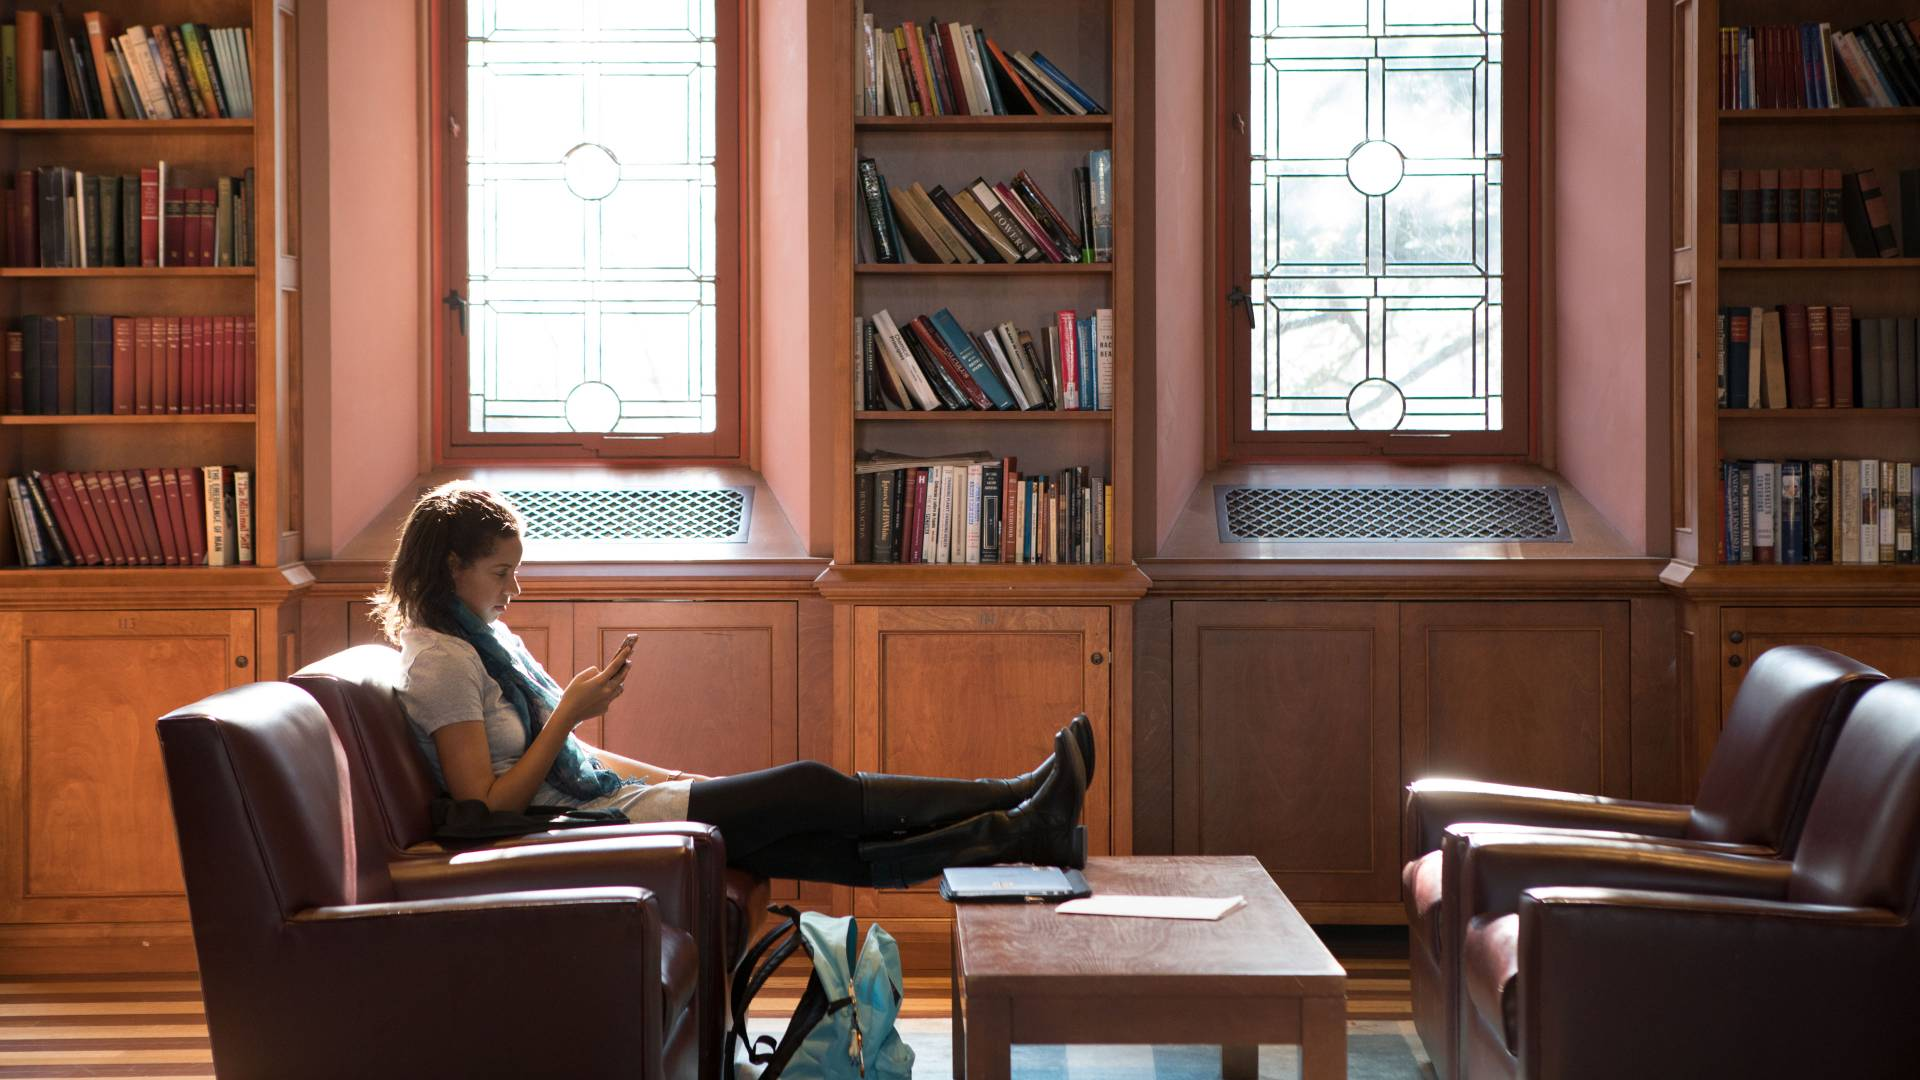 Student sitting on chair reading in library